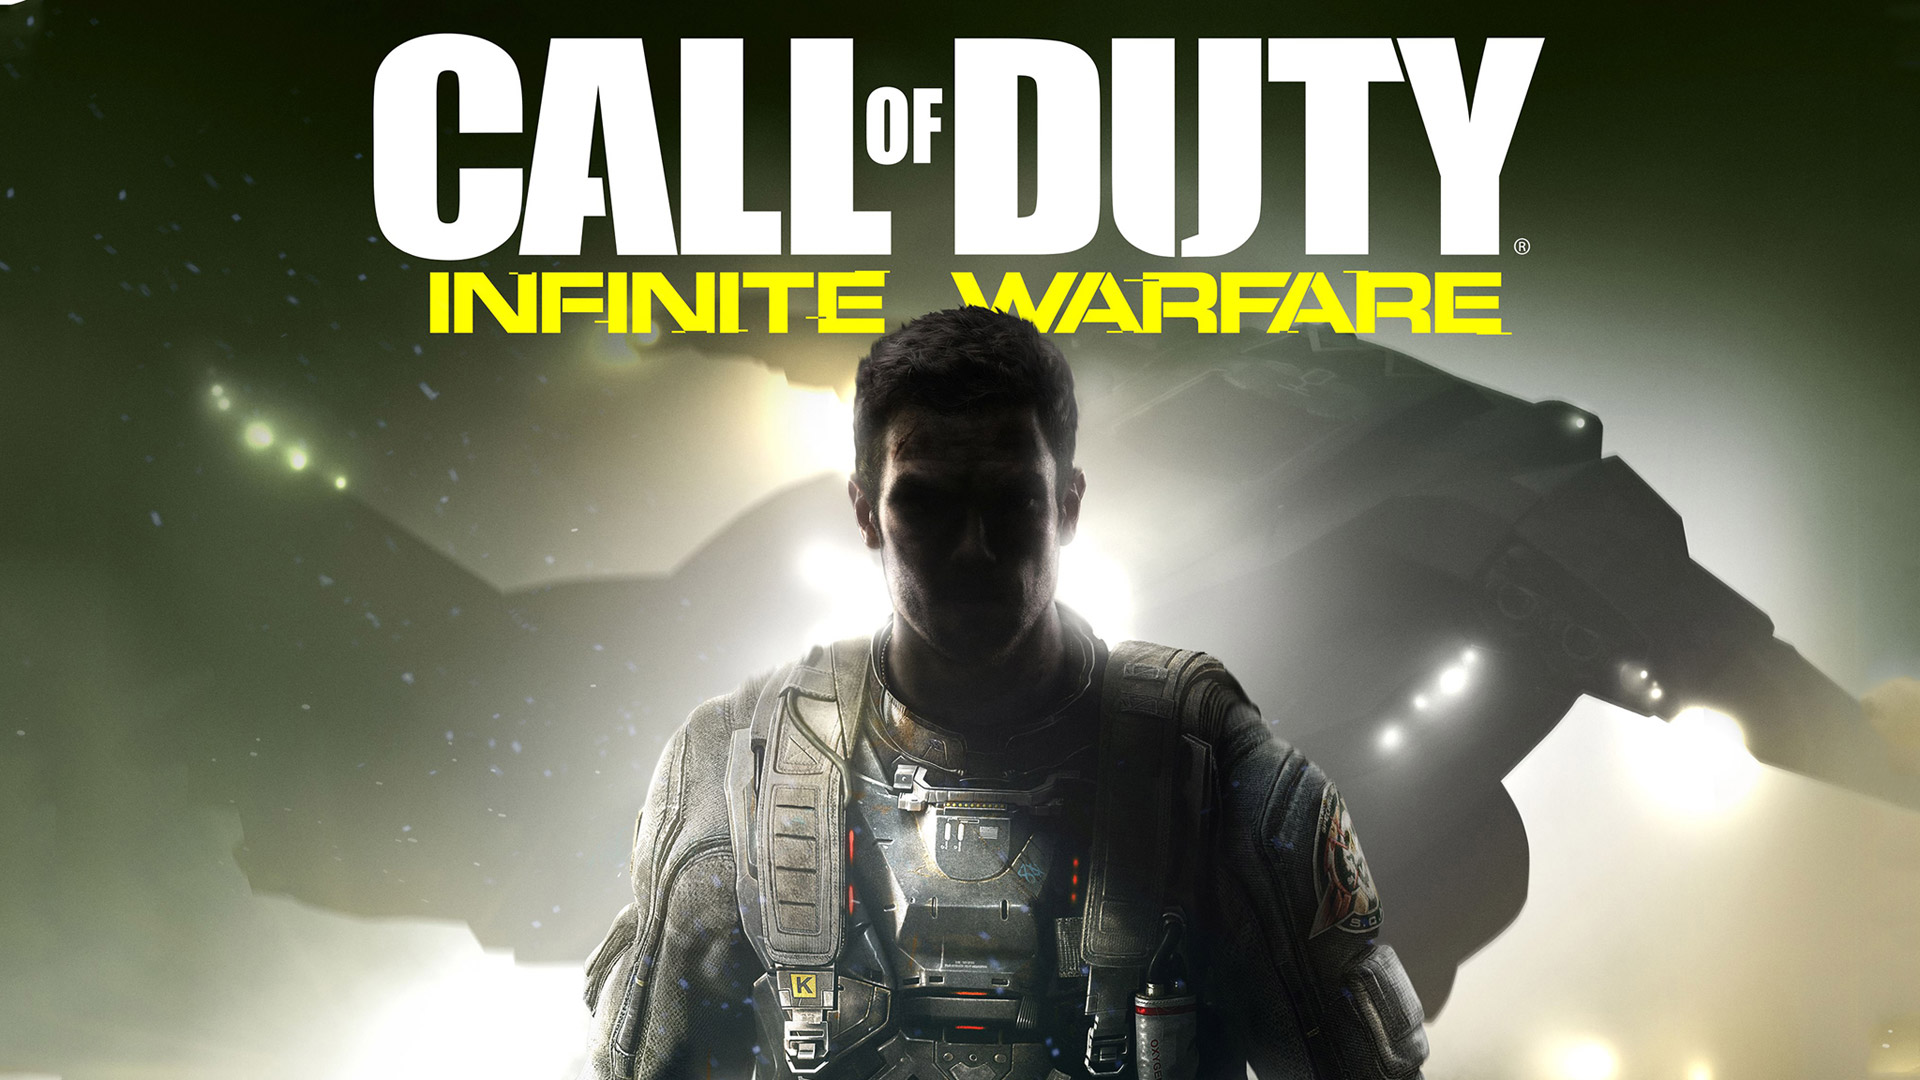 Call Of Duty Infinite Warfare Wallpaper Posted By Sarah Tremblay